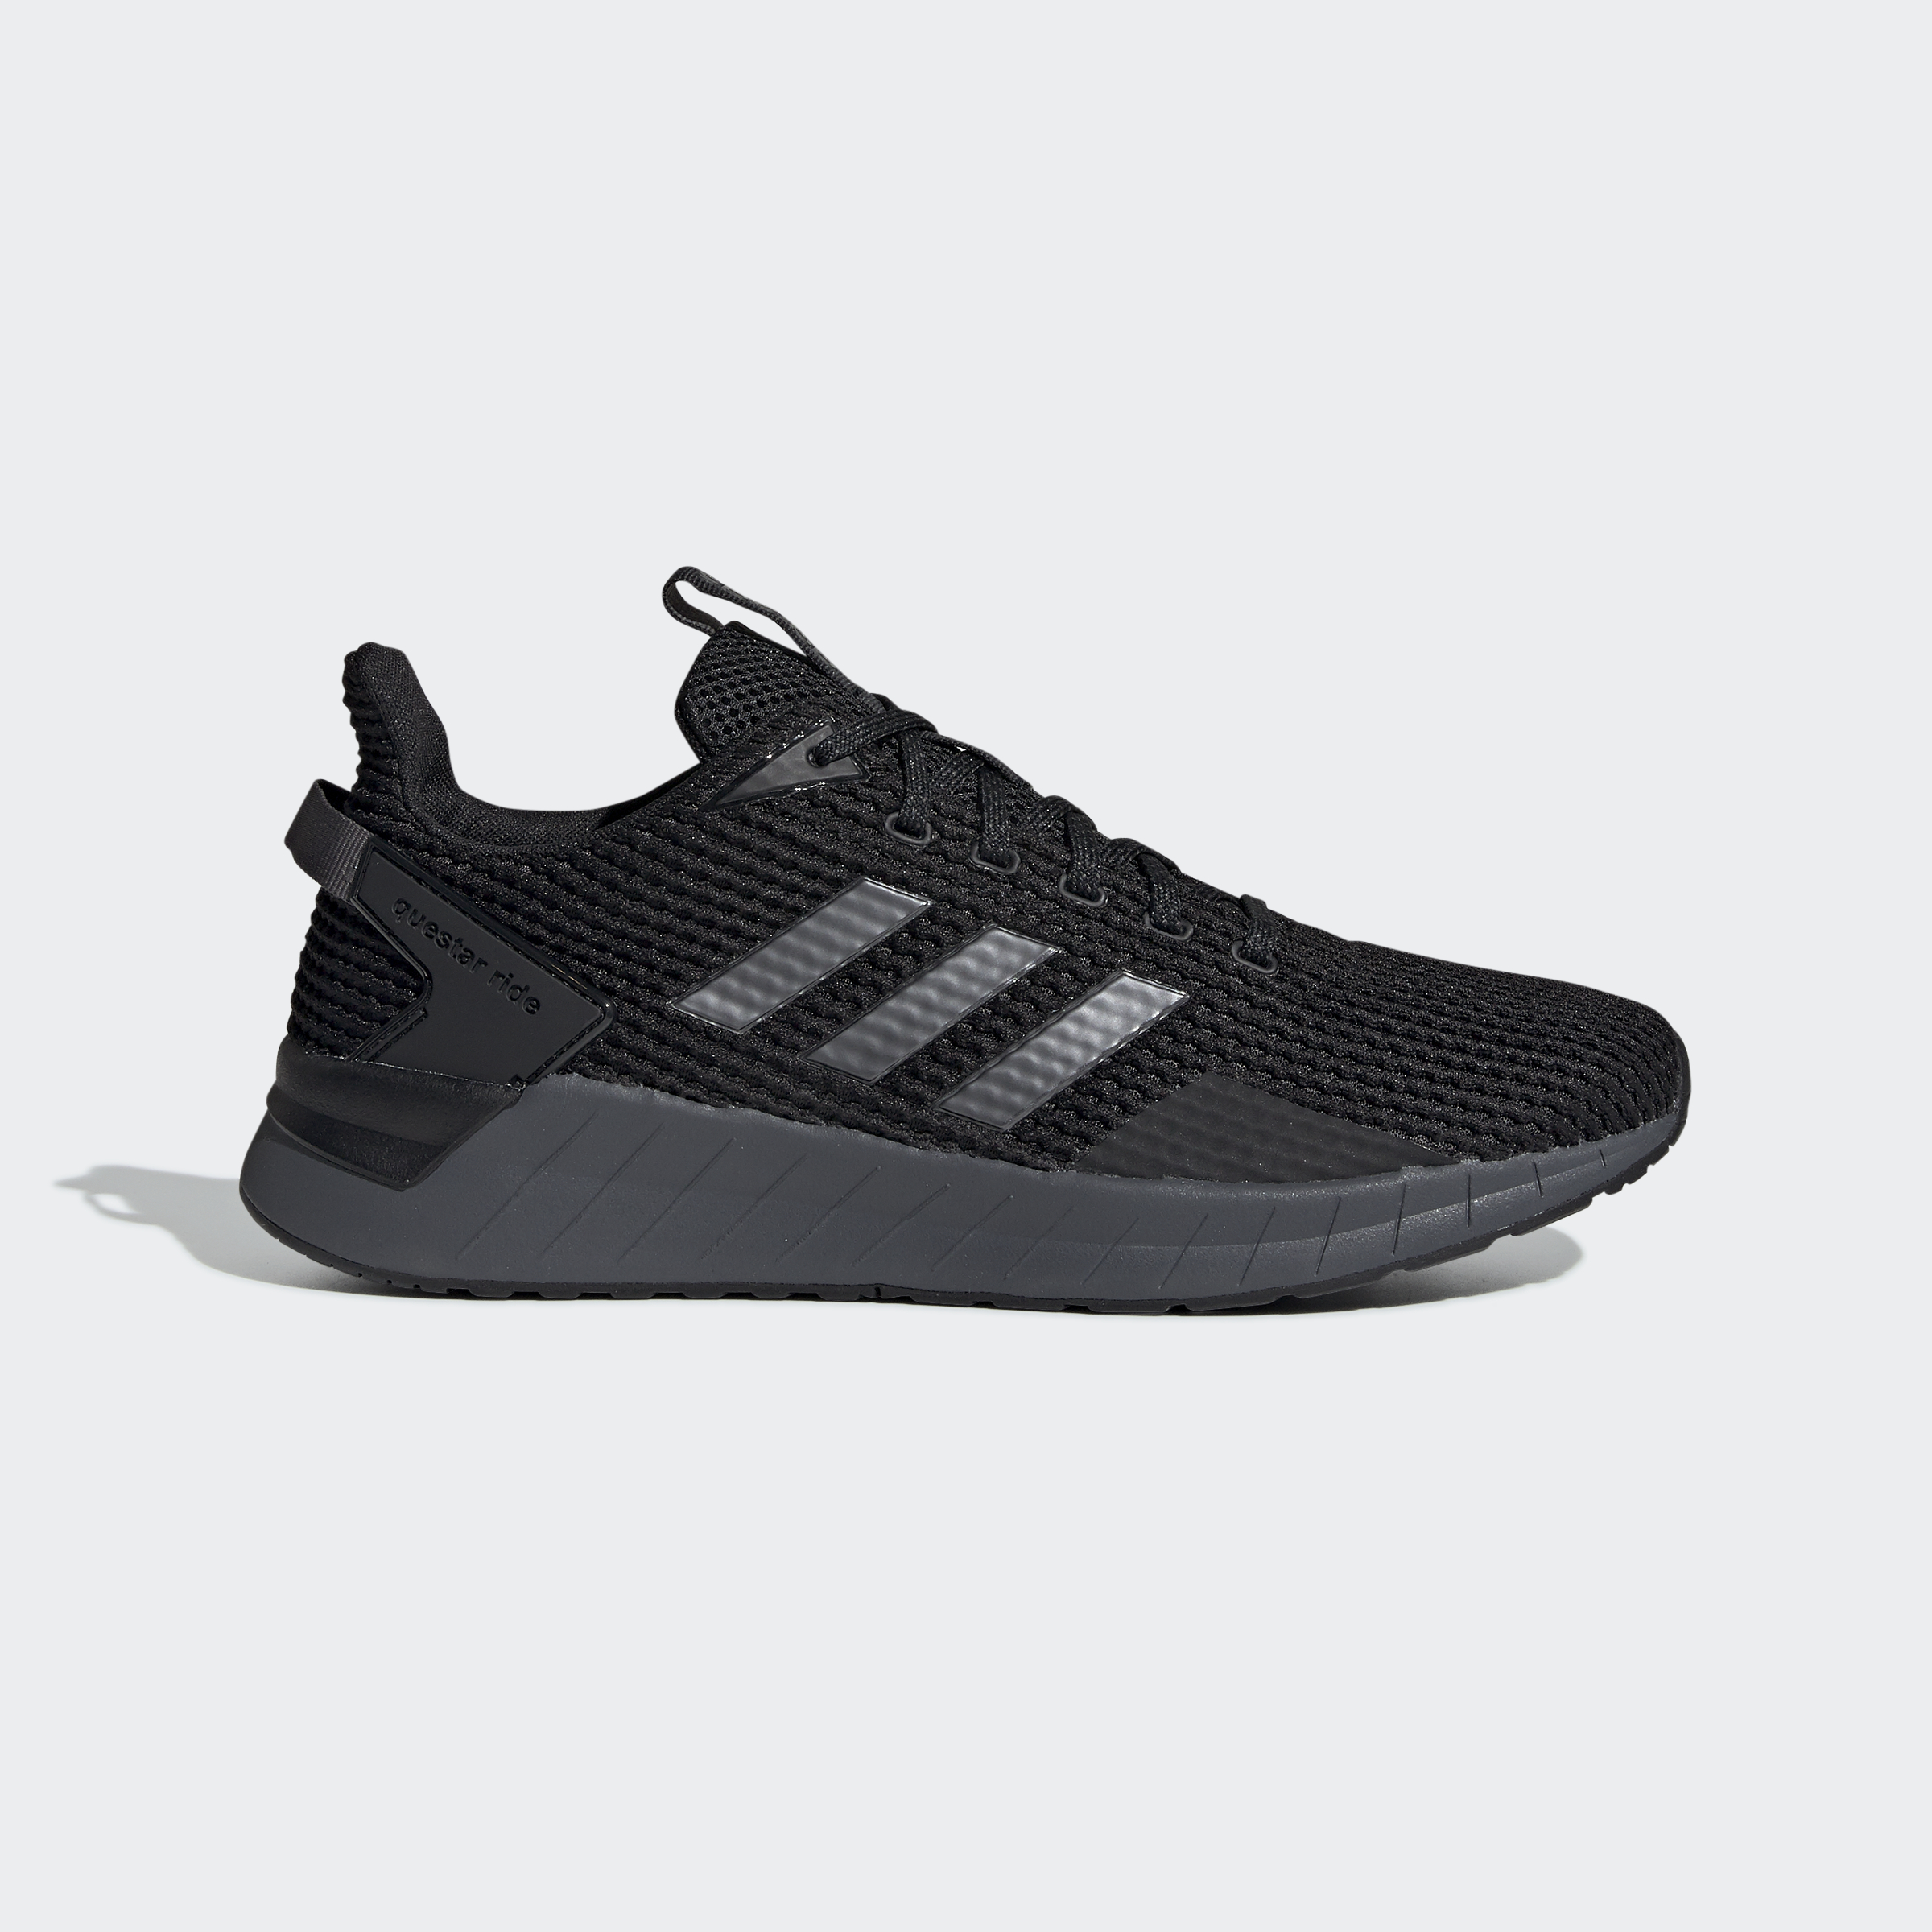 Details about NEW adidas Men's Questar Ride Shoes